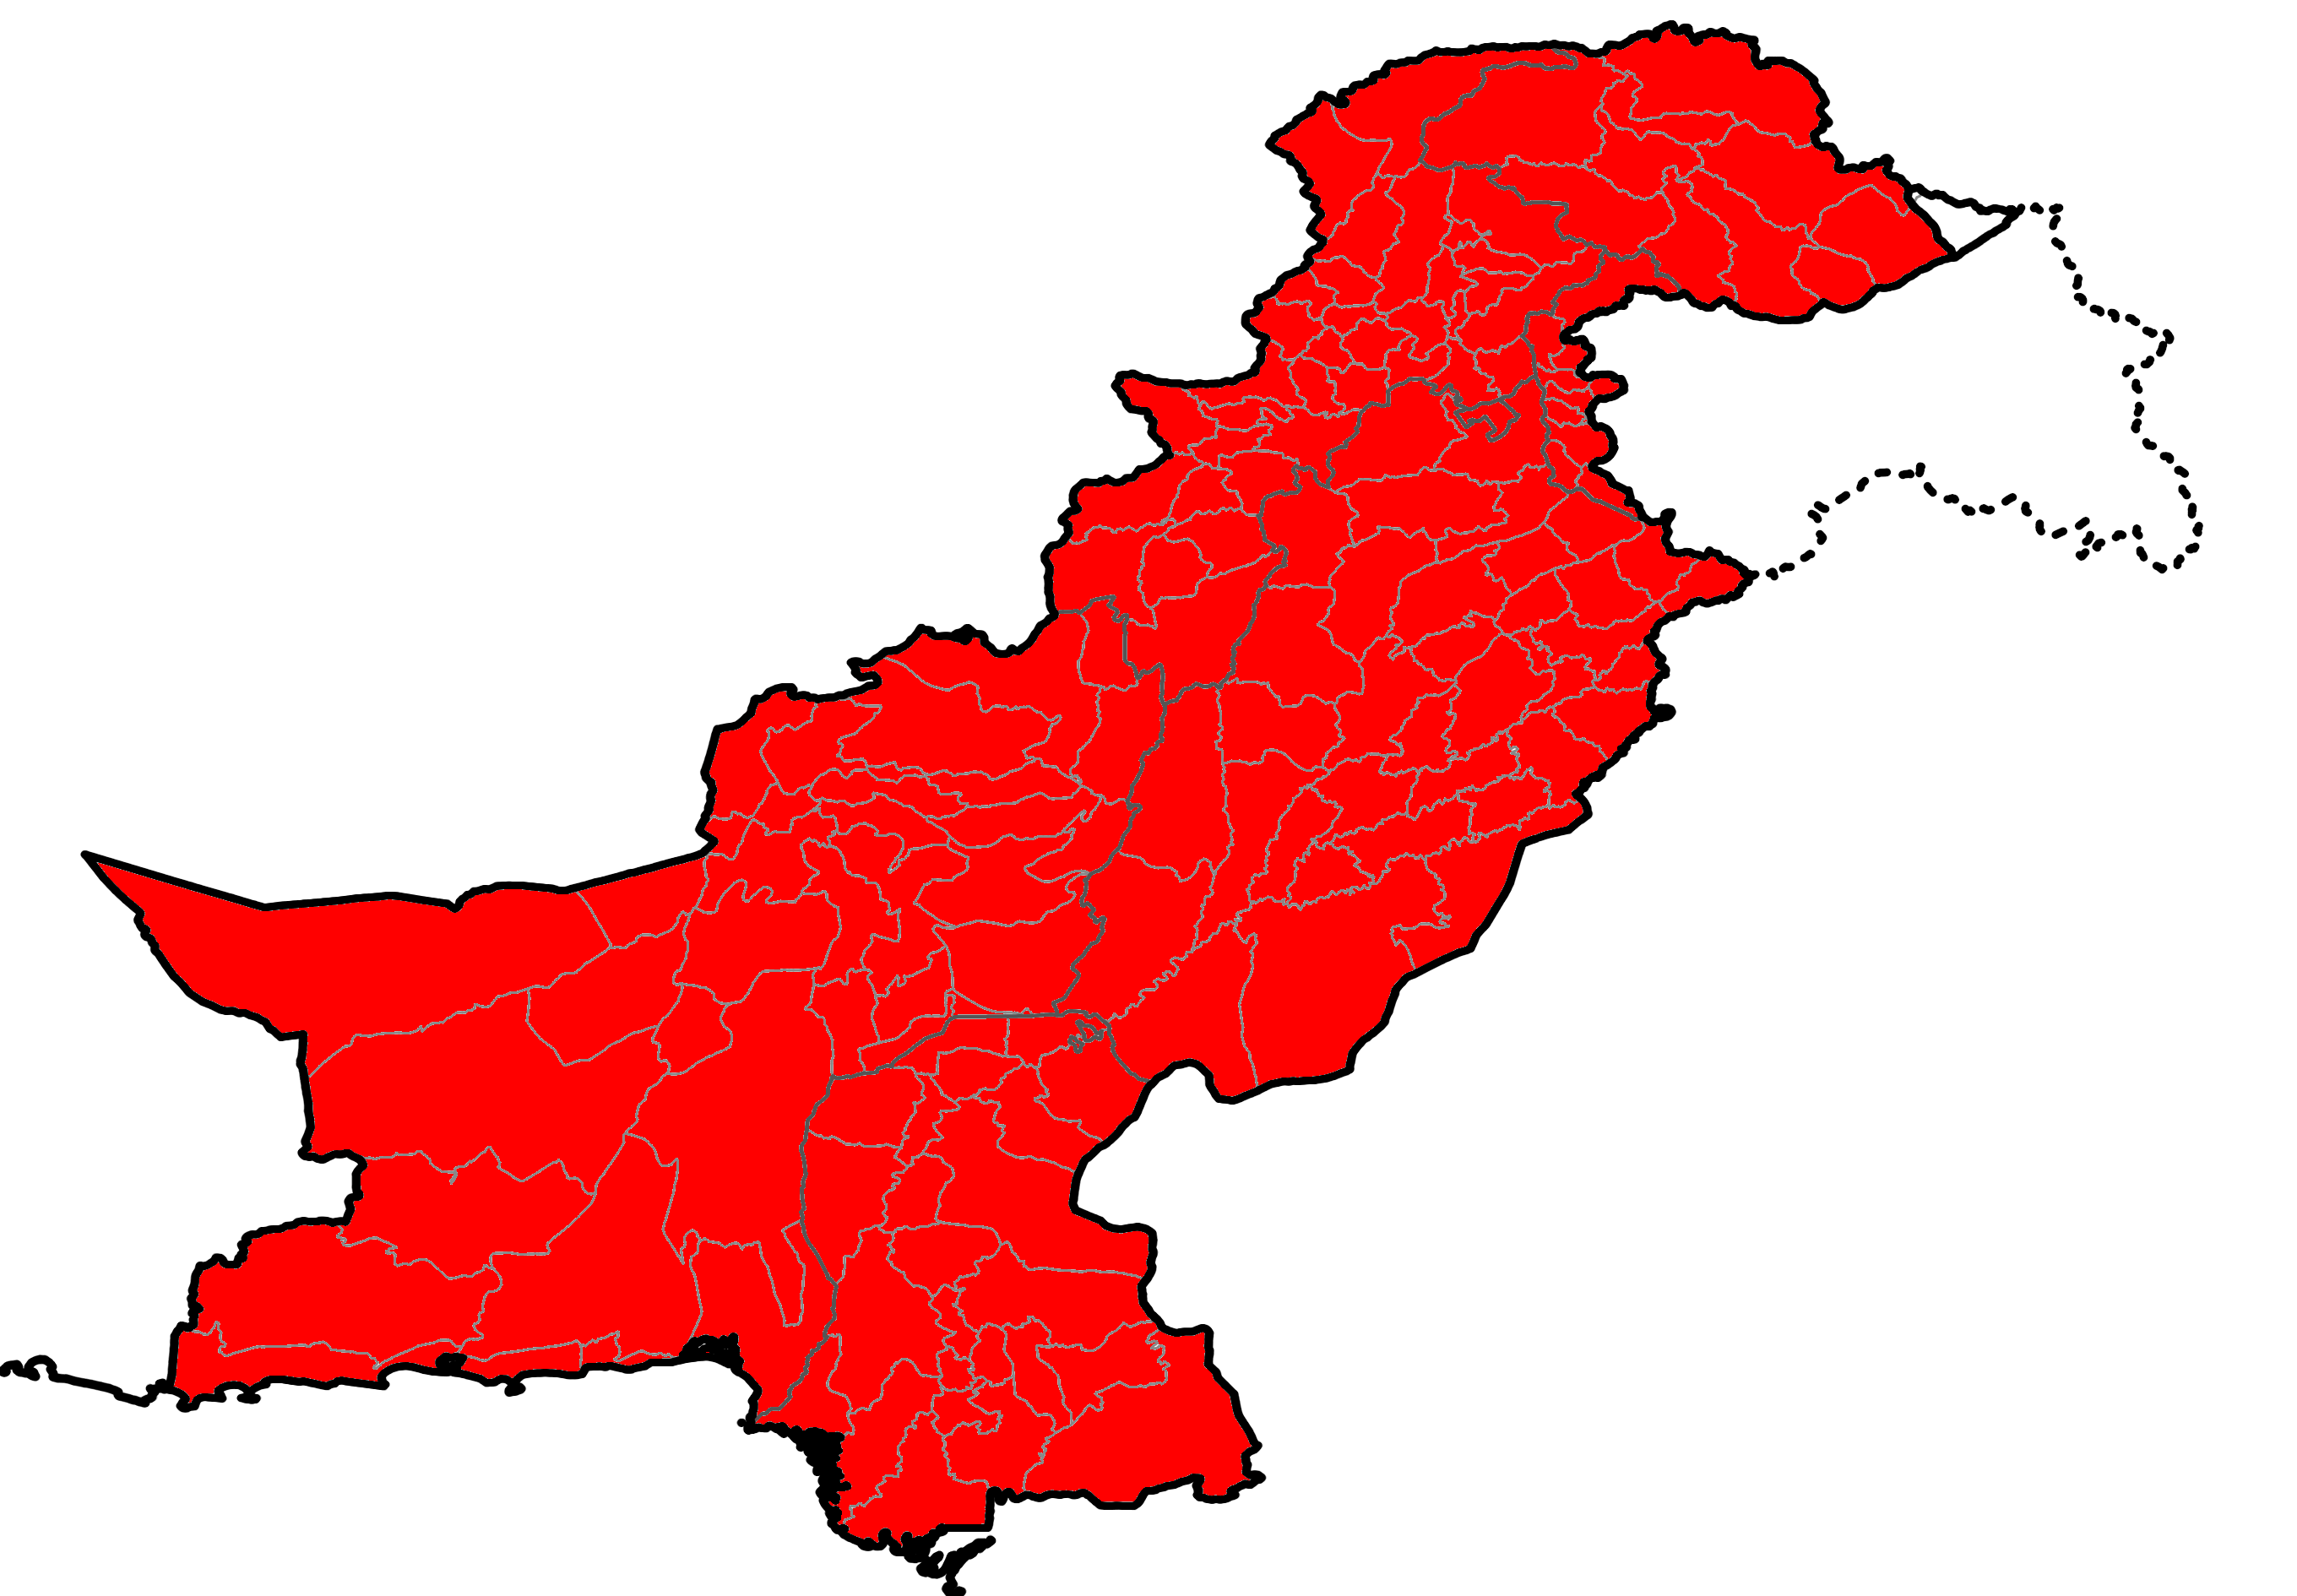 2020 coronavirus pandemic in Pakistan - Wikipedia